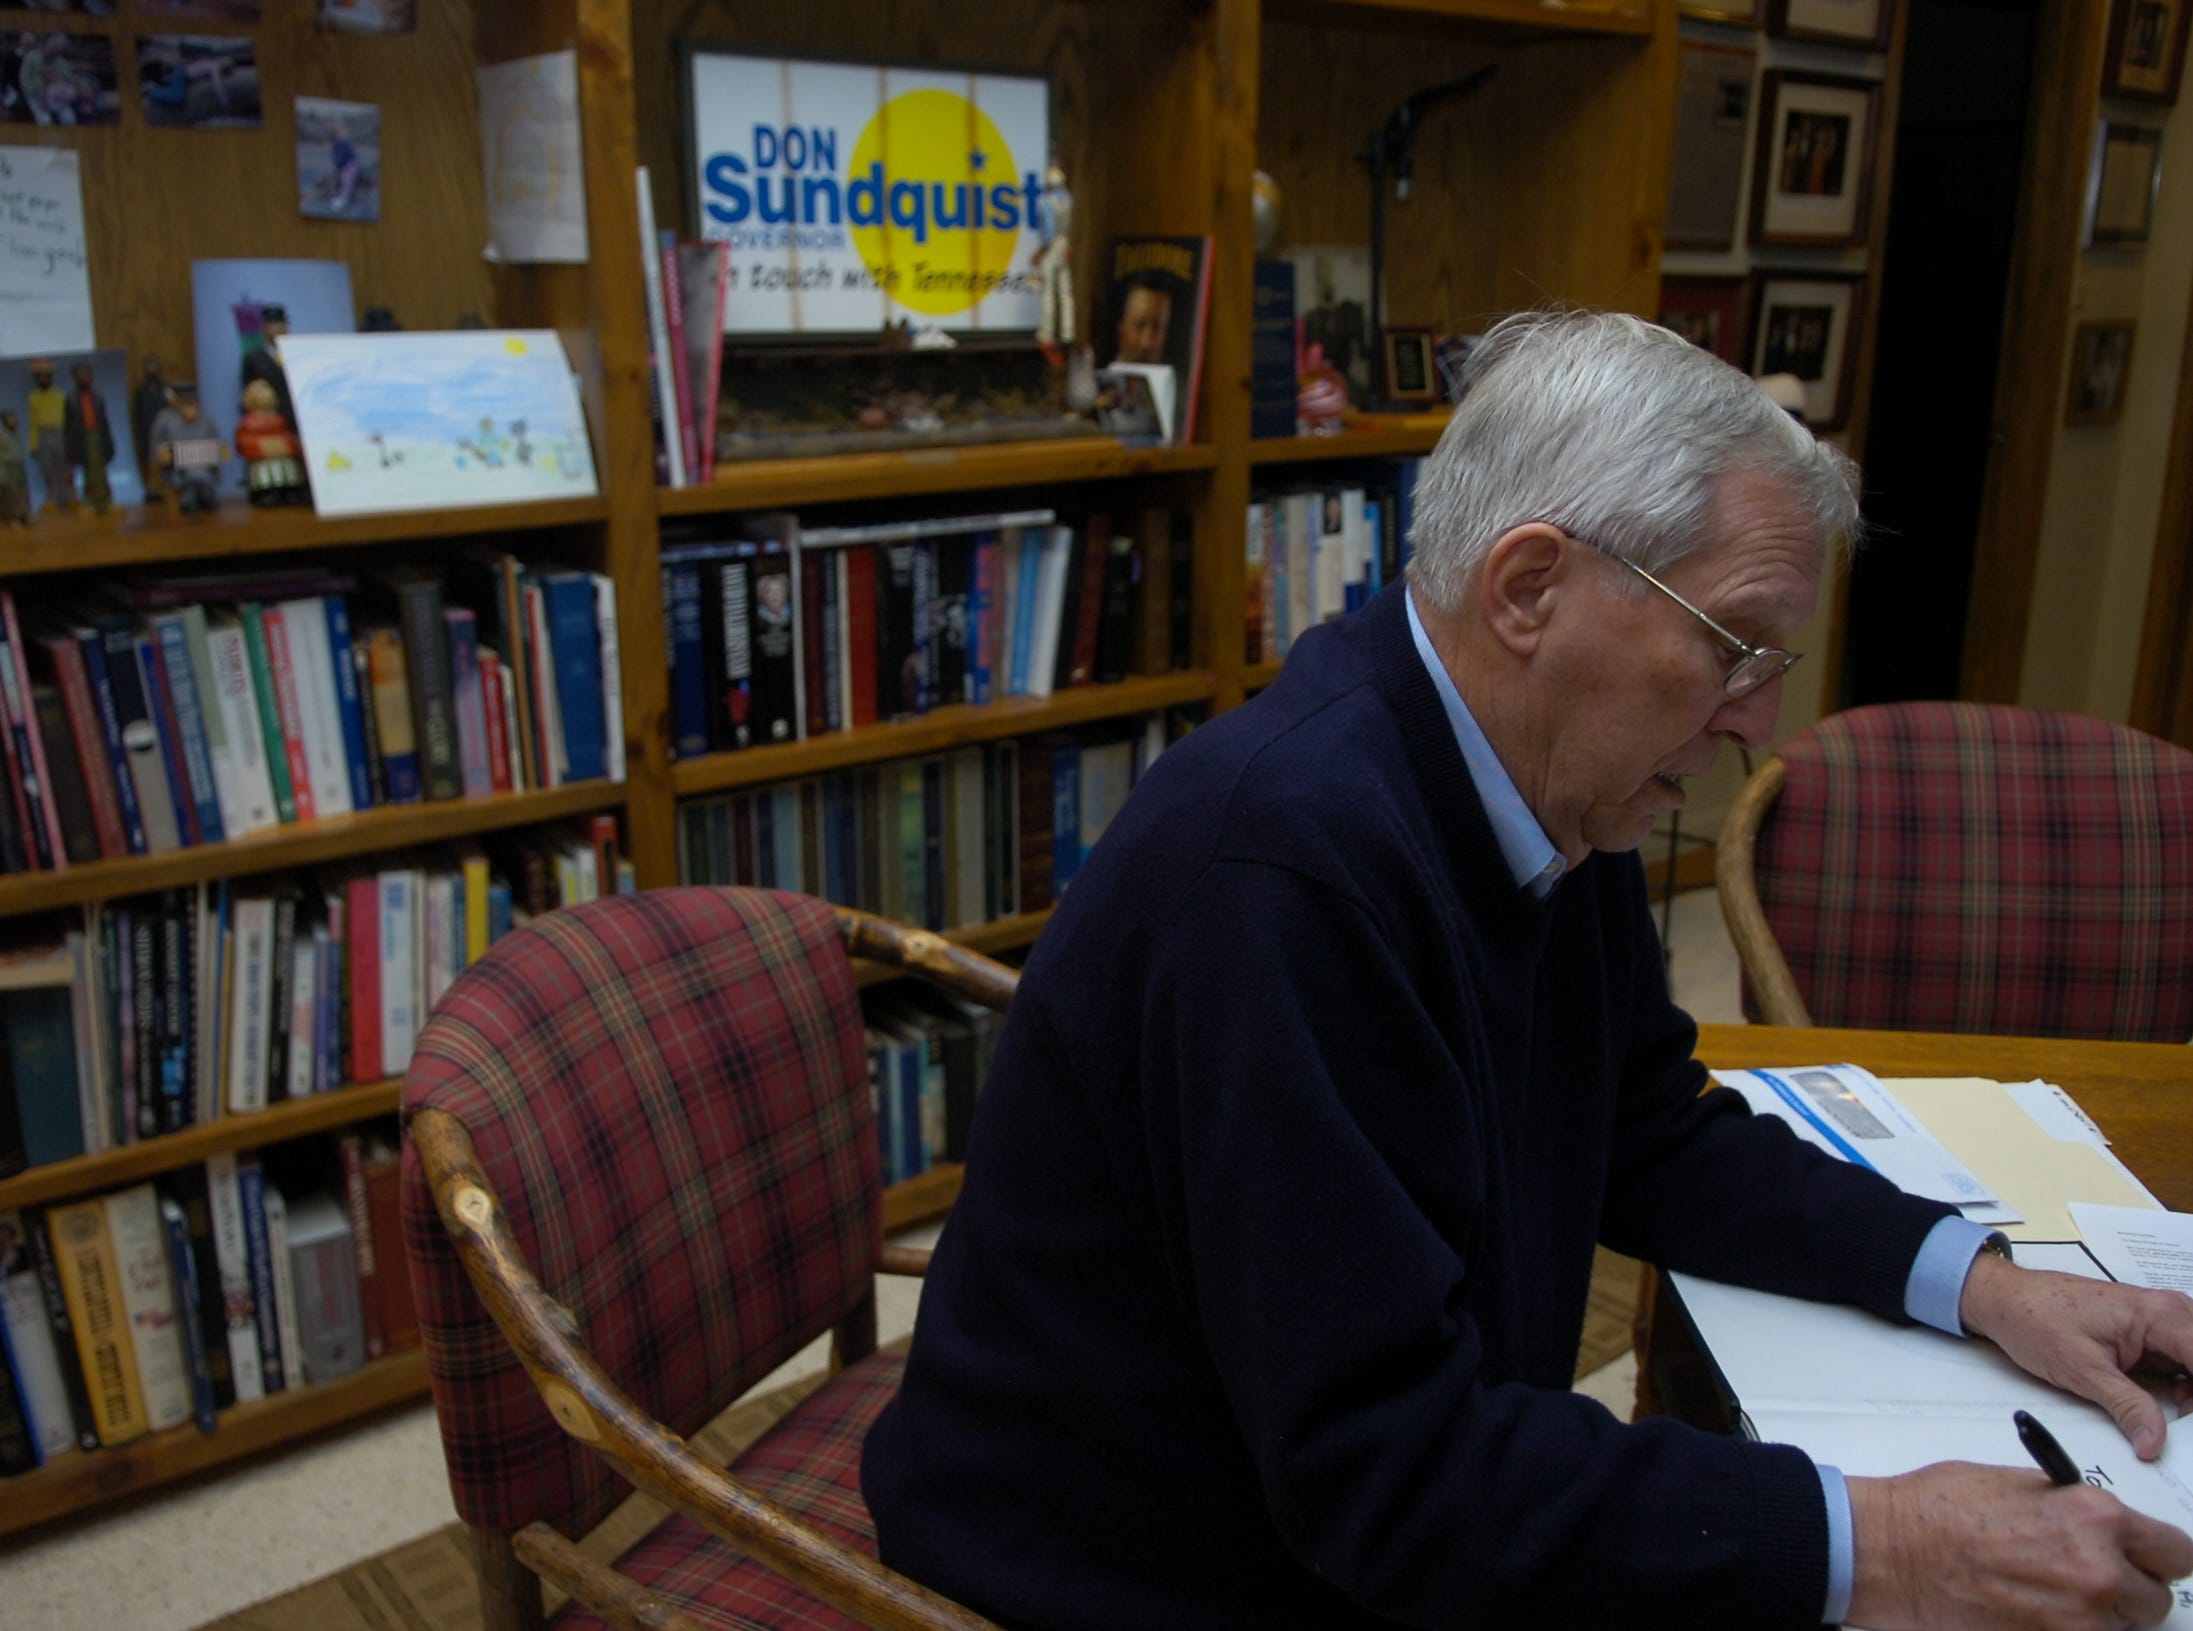 Former Tennessee Governor Don Sundquist in his office area at his home in Laurel Valley, located in Townsend, TN. Sundquist served as governor from 1995 to 2002.